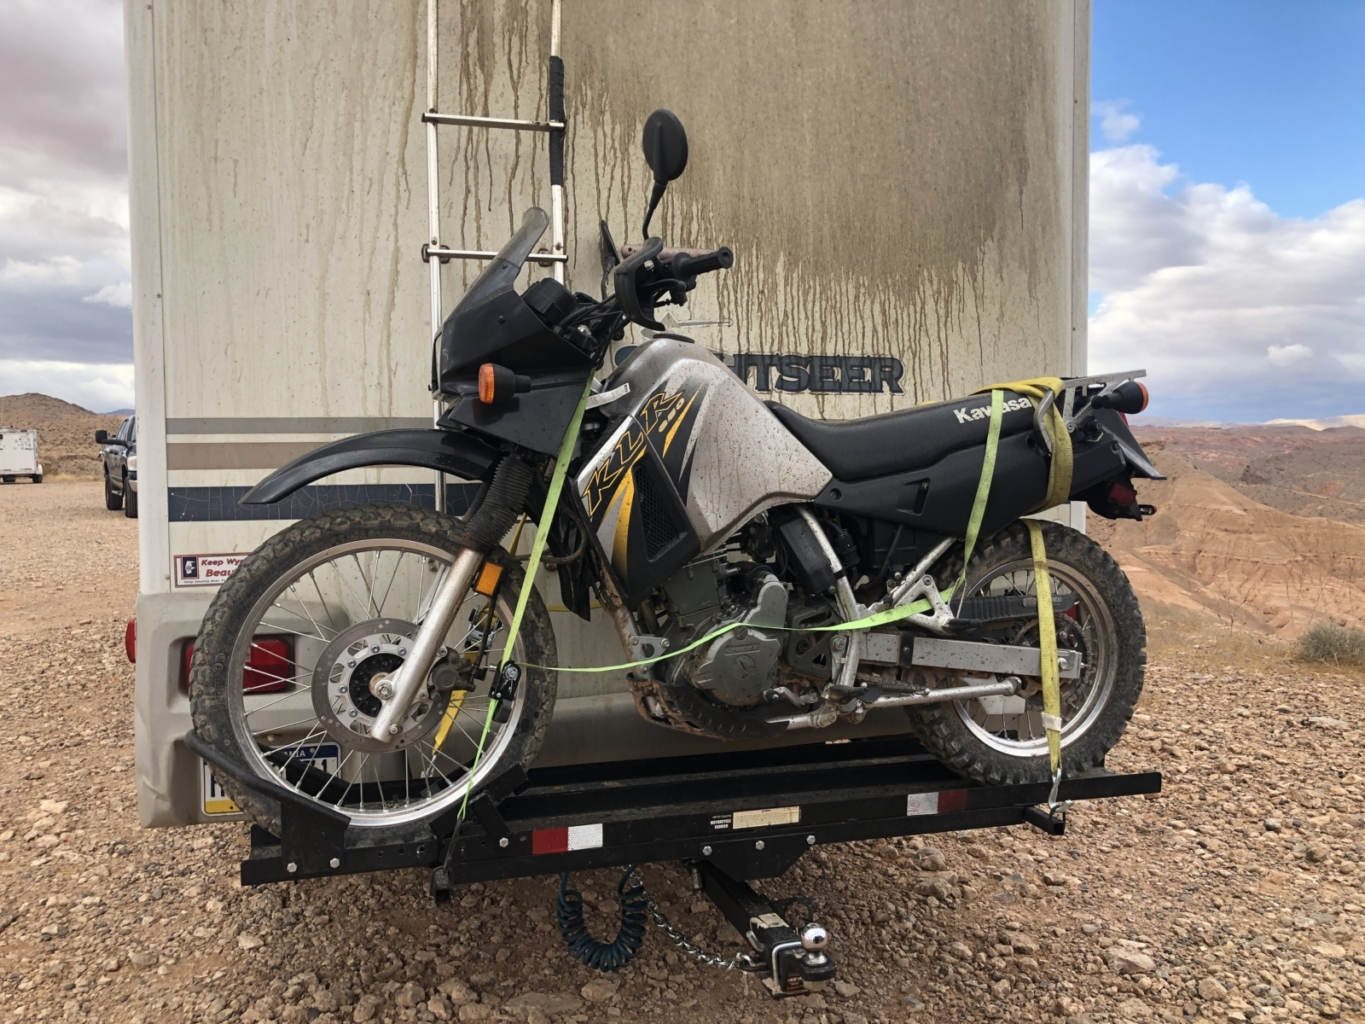 How To Flat Tow While Using A Motorcycle Rack Rv Motorcycle Carrier Wanderusliving